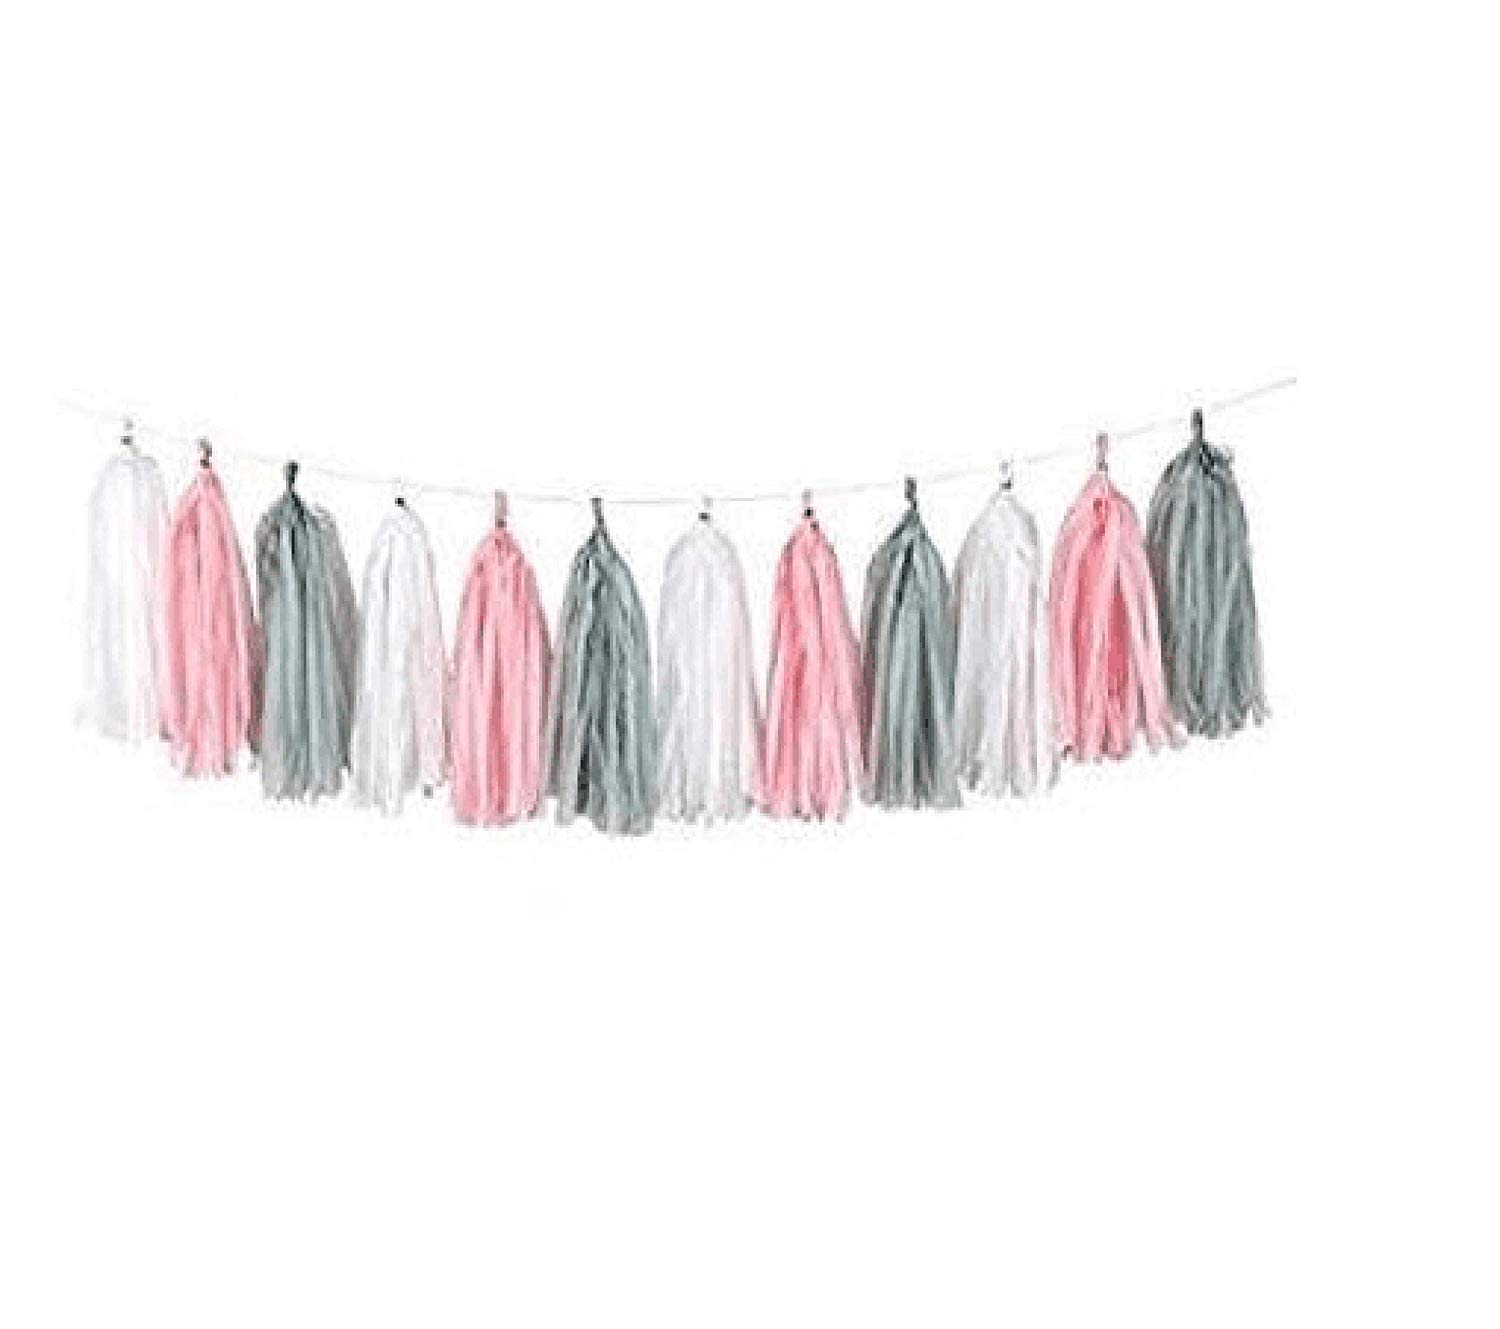 Girl Baby Shower Decorations Tassel Garland, Tissue Paper Tassels for Wedding, Baby Shower, Event & Party Supplies, 3 Pack 15 Pcs 14 inch DIY Kits - (Pink+Grey +White)